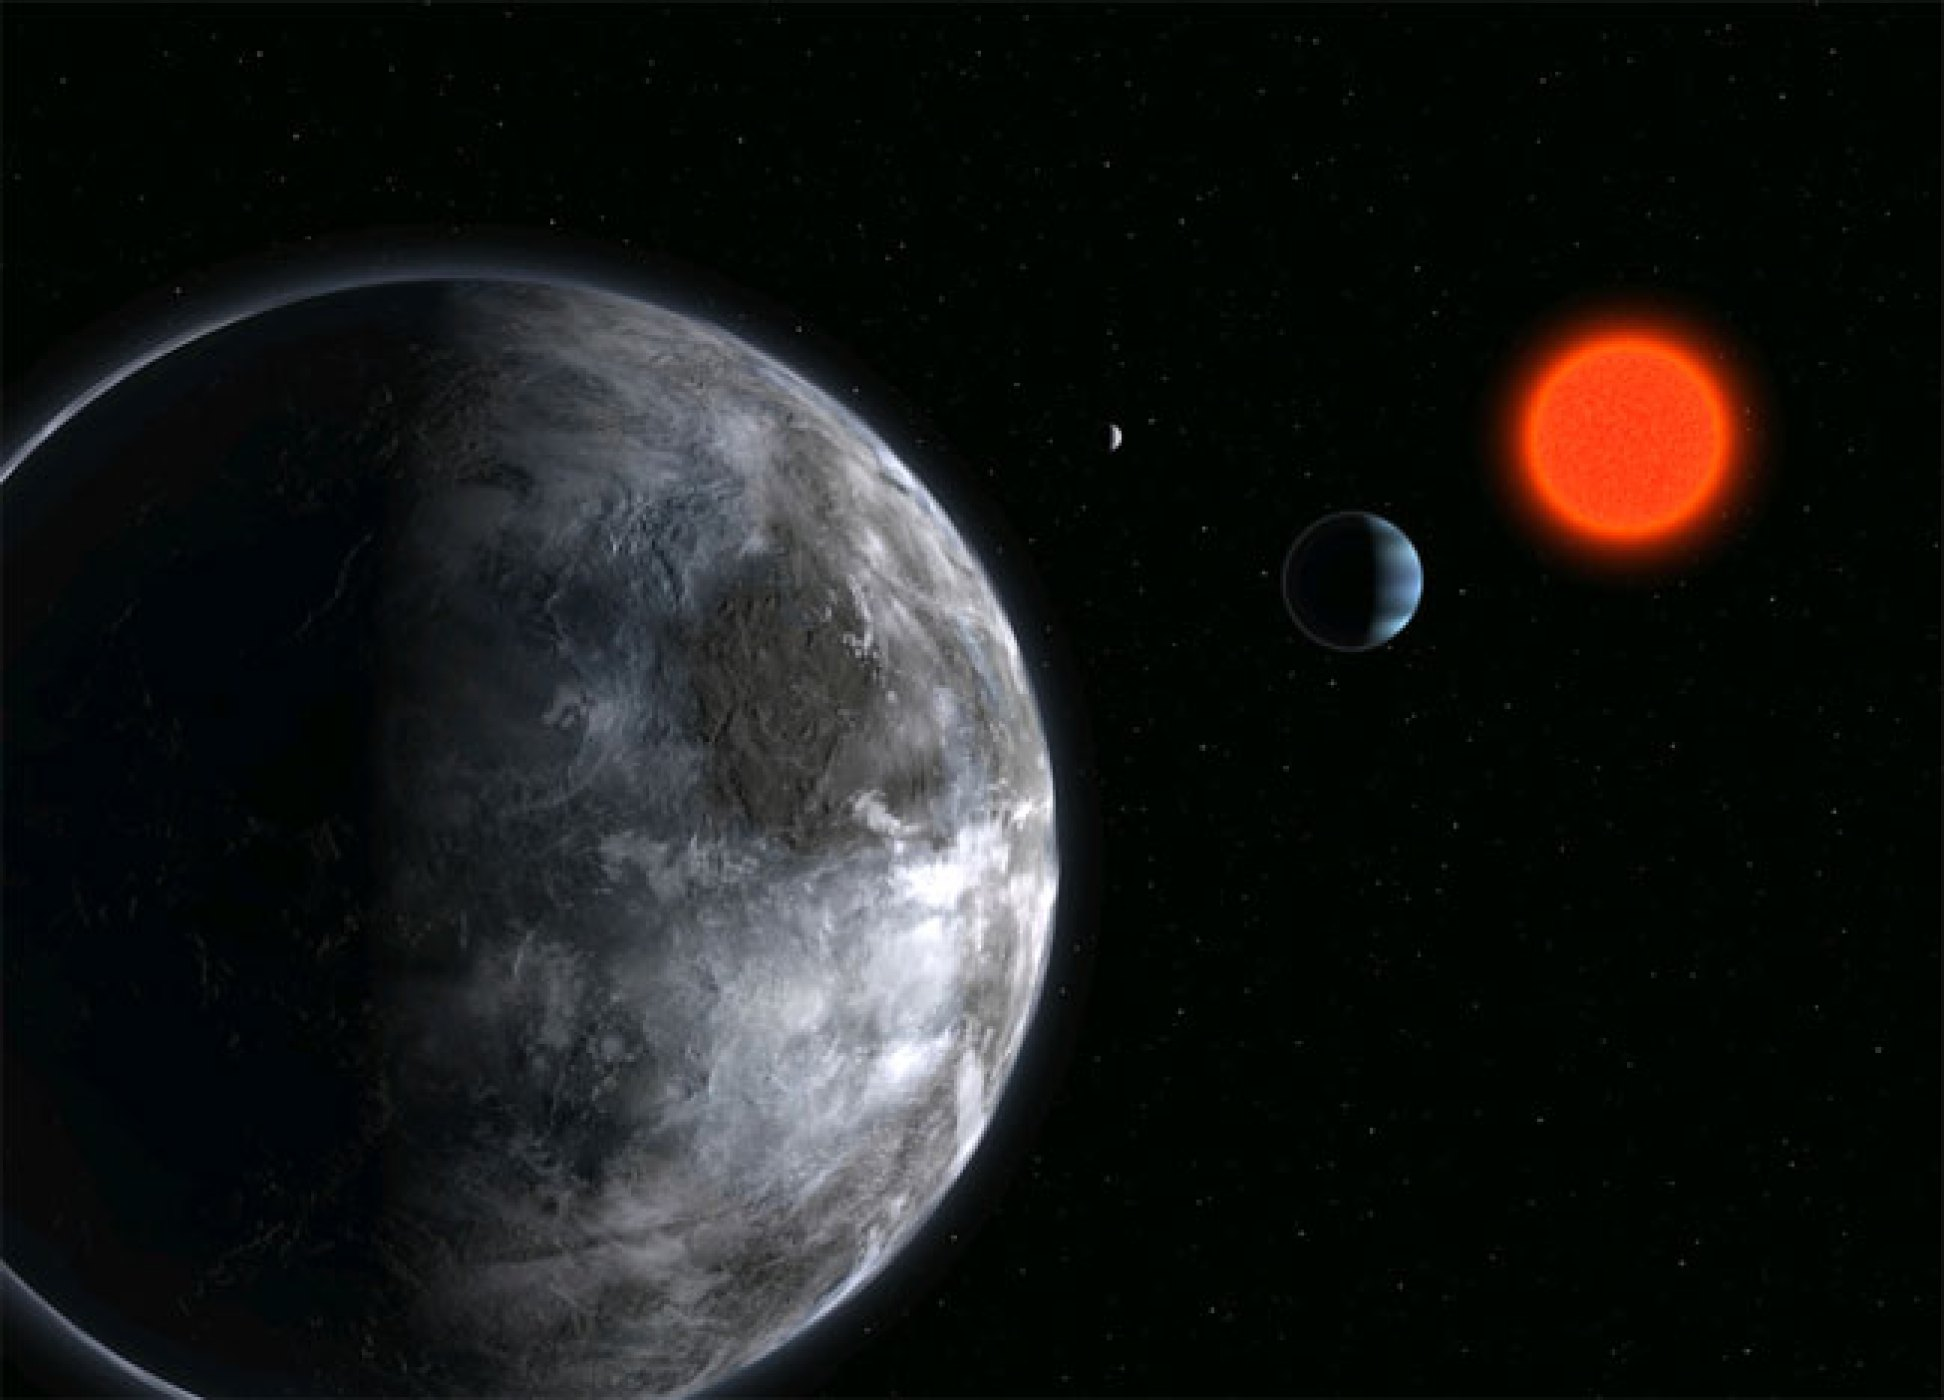 Gliese 581 d, the most potentially habitable planet discovered